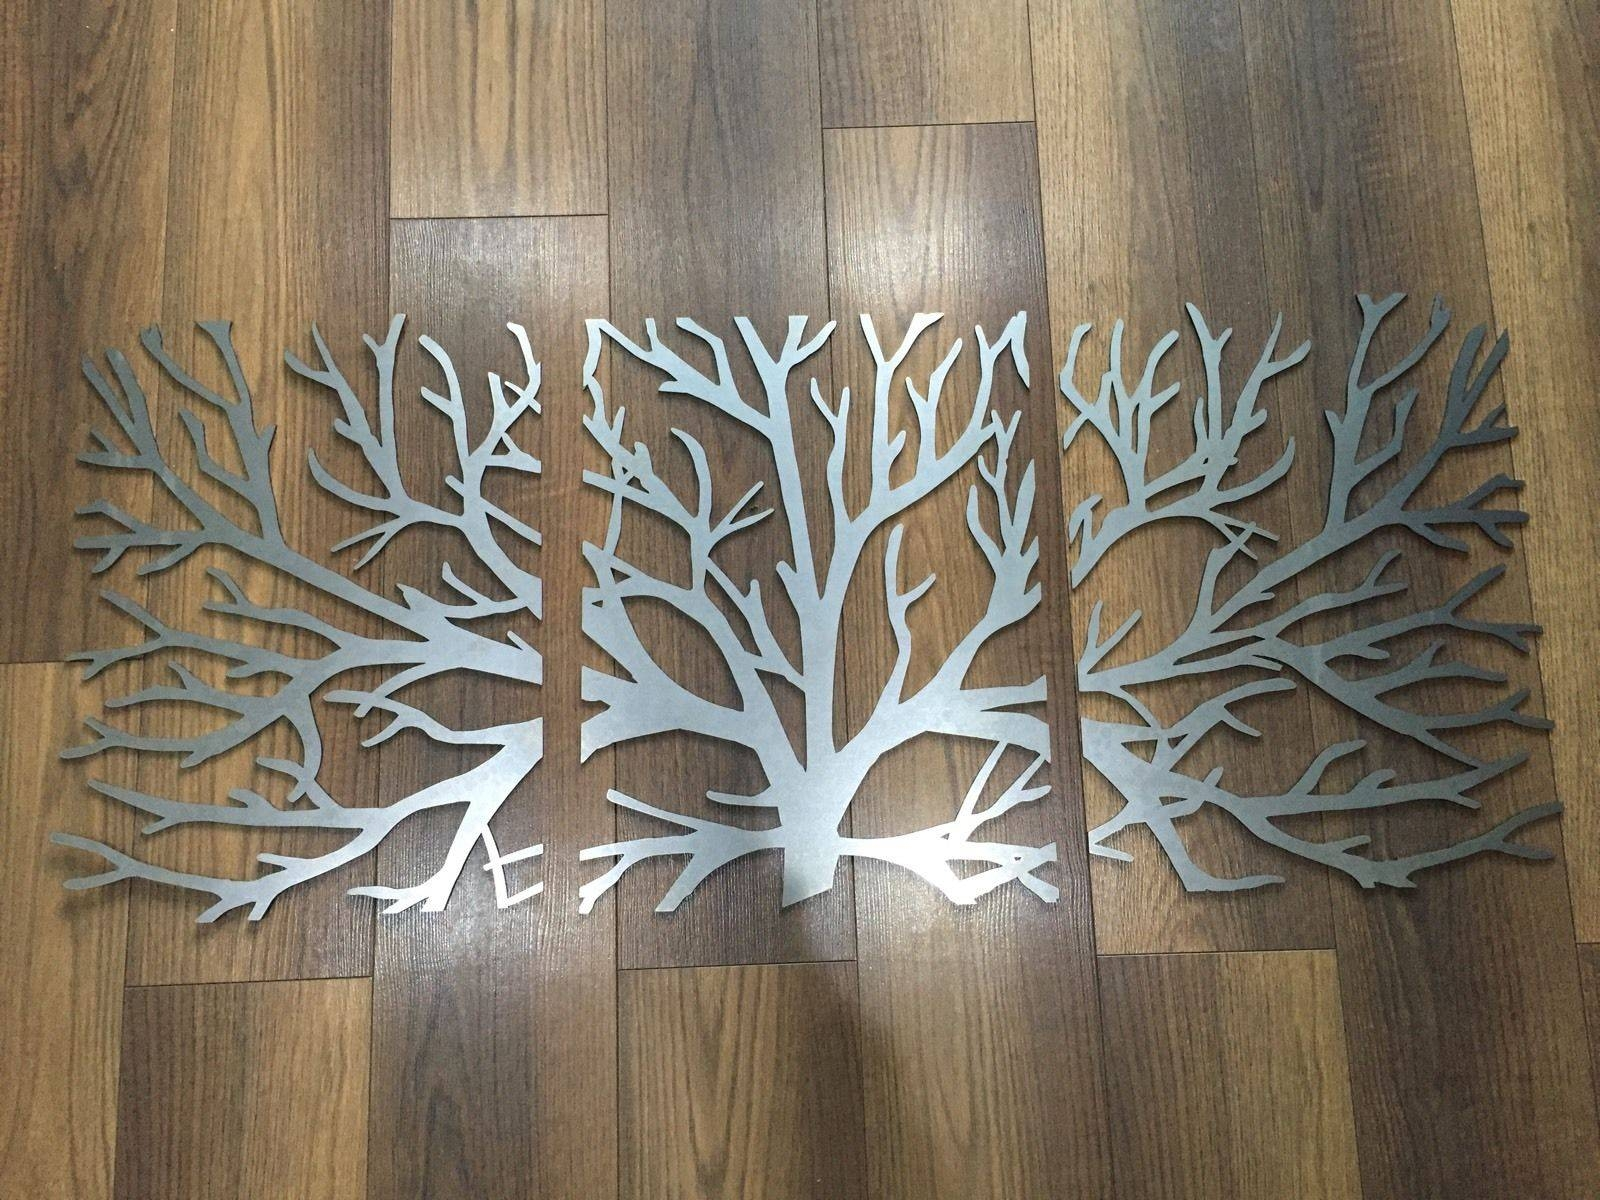 Wall Art Designs: Metal Wall Art Decor And Sculptures Wooden Metal For Most Current Metal Wall Art Sculptures (View 7 of 20)